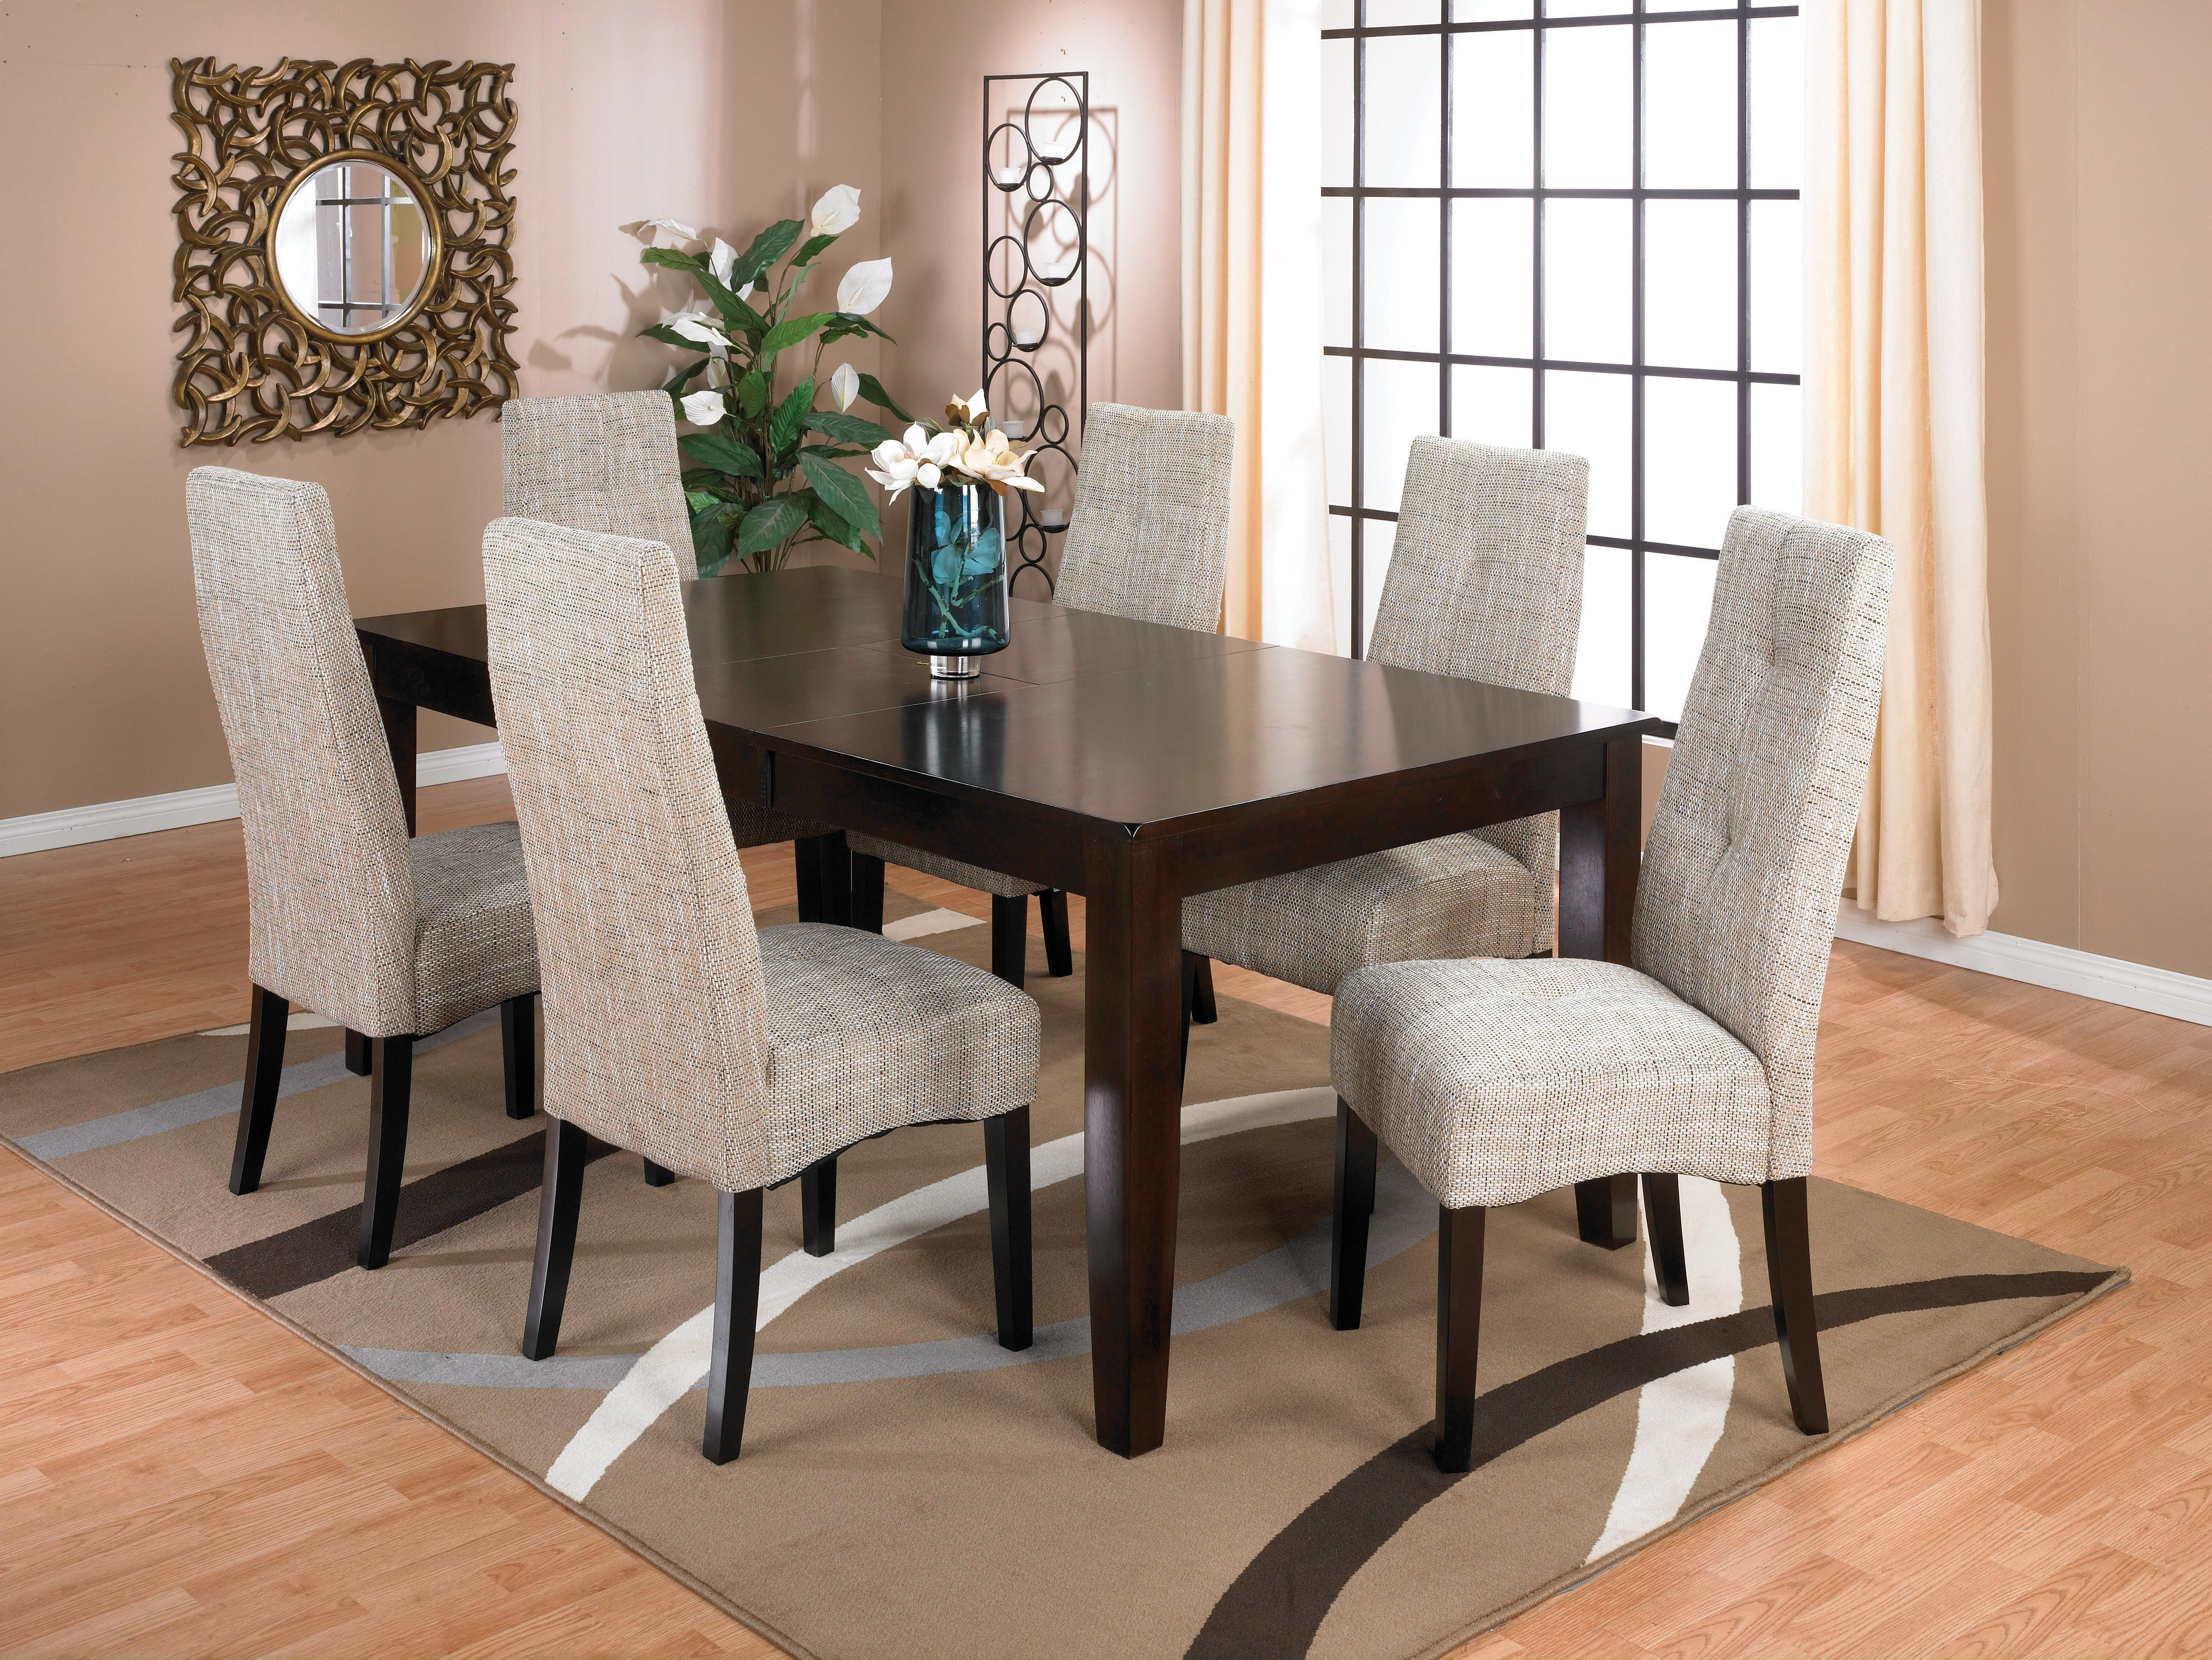 Dakota 7 Piece Dining Package With Linen Chairs  Dining Chairs Captivating Dining Room Accent Pieces Design Inspiration